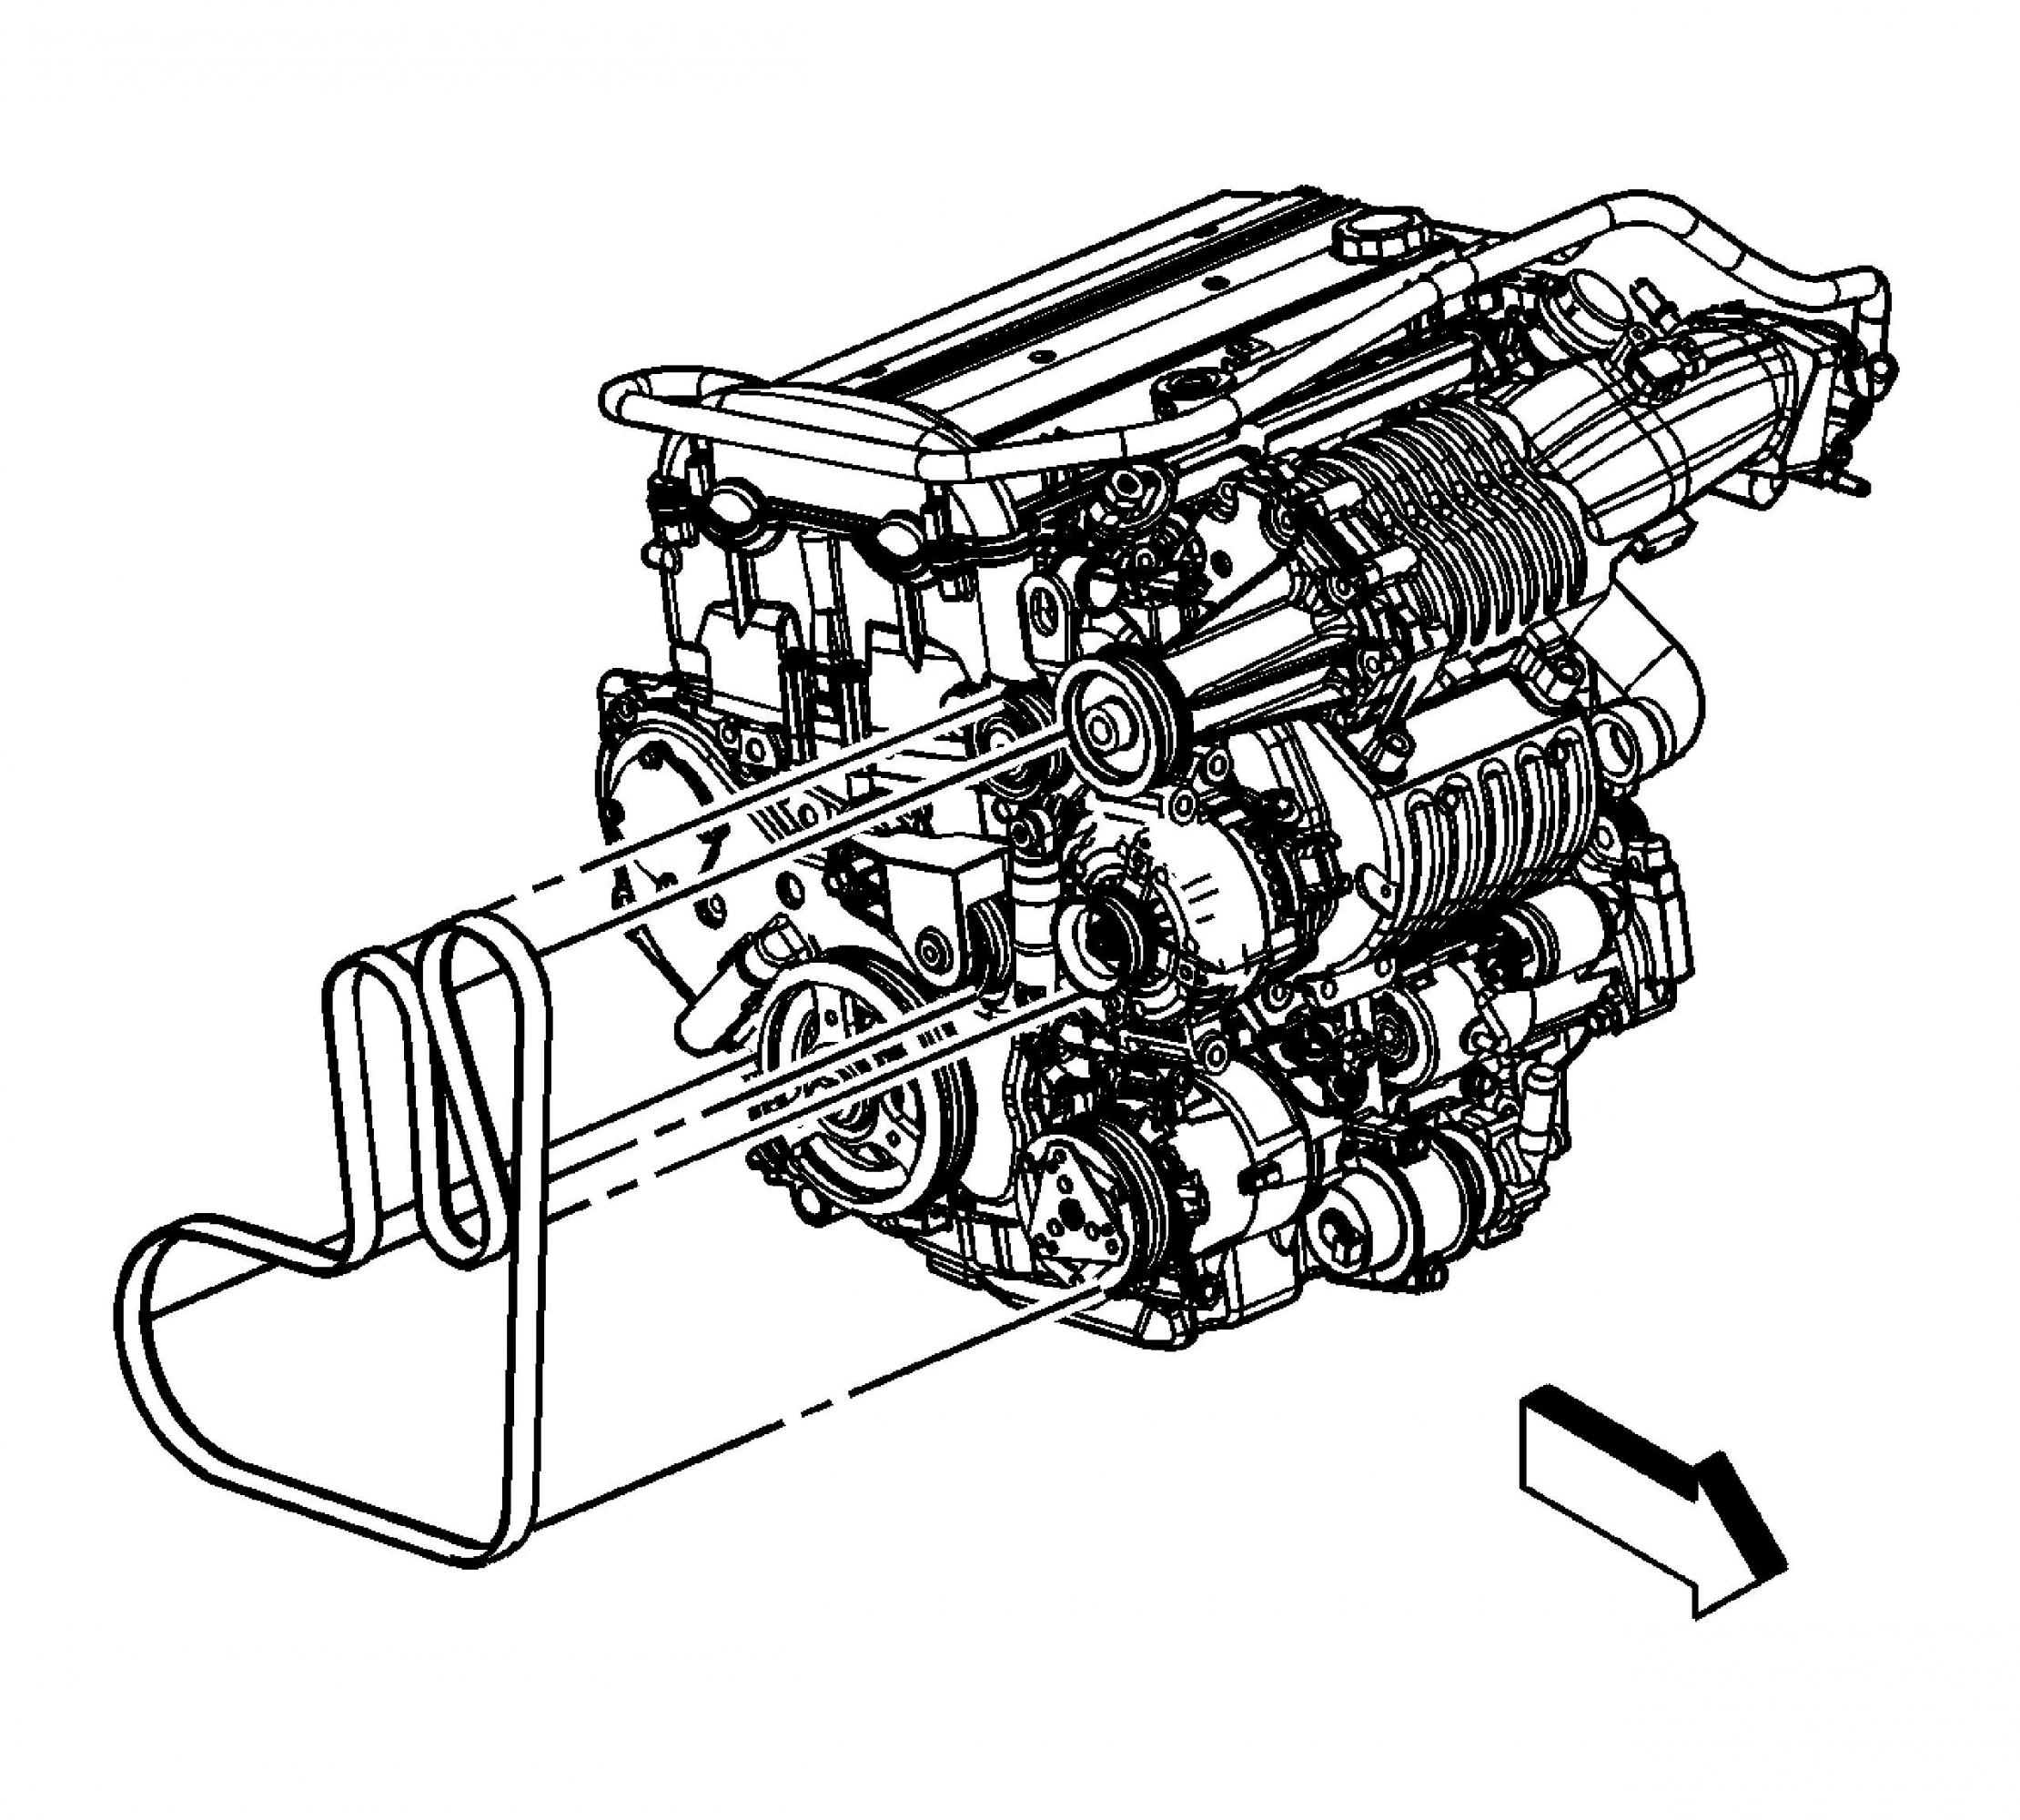 chevrolet cobalt engine diagram